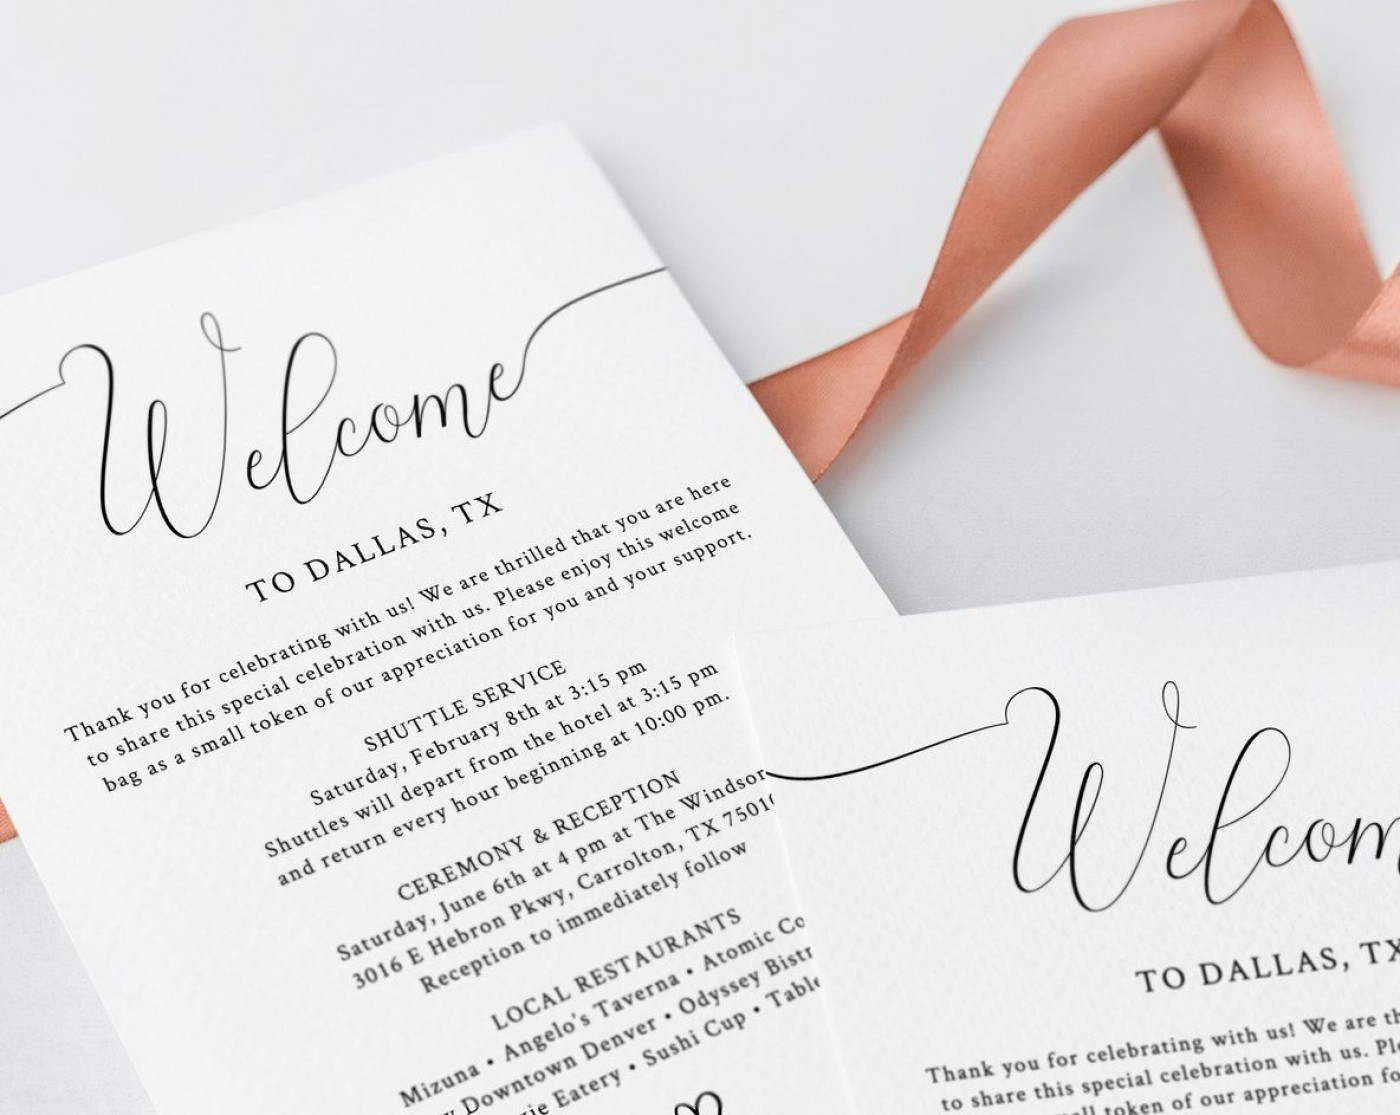 003 Phenomenal Wedding Hotel Welcome Letter Template Idea 1400